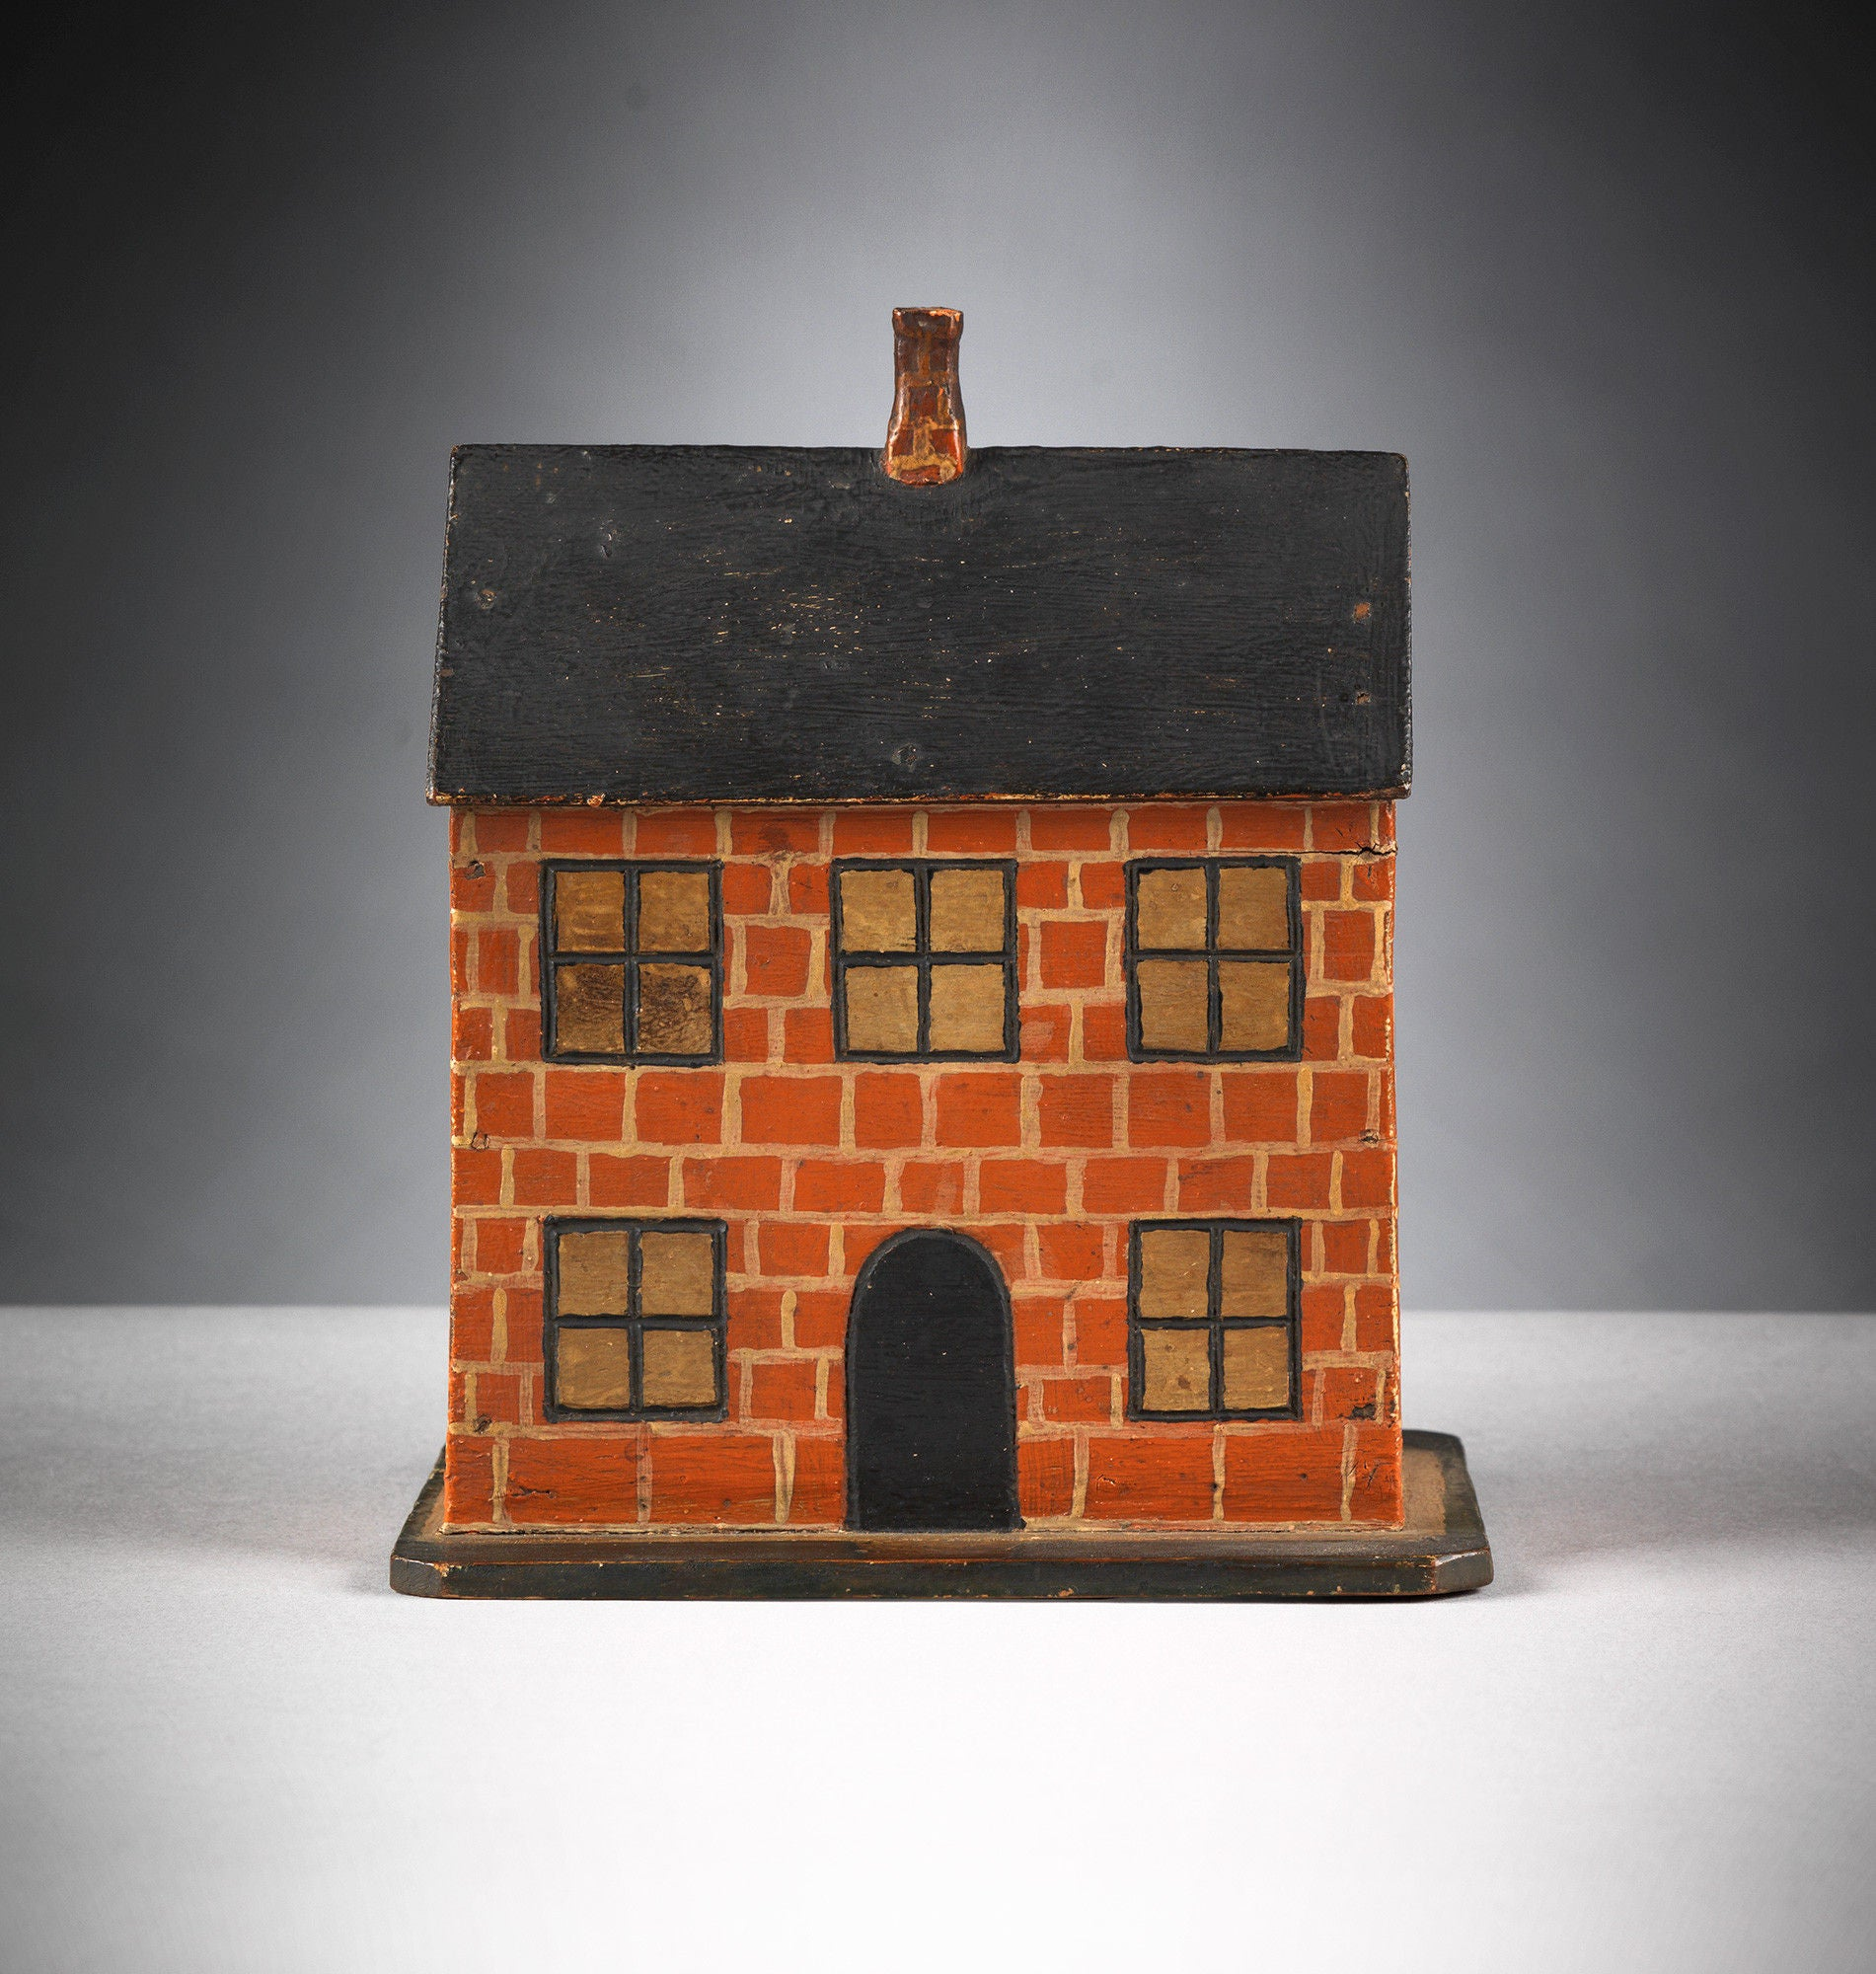 Delightful Primitive Folk Art House Model